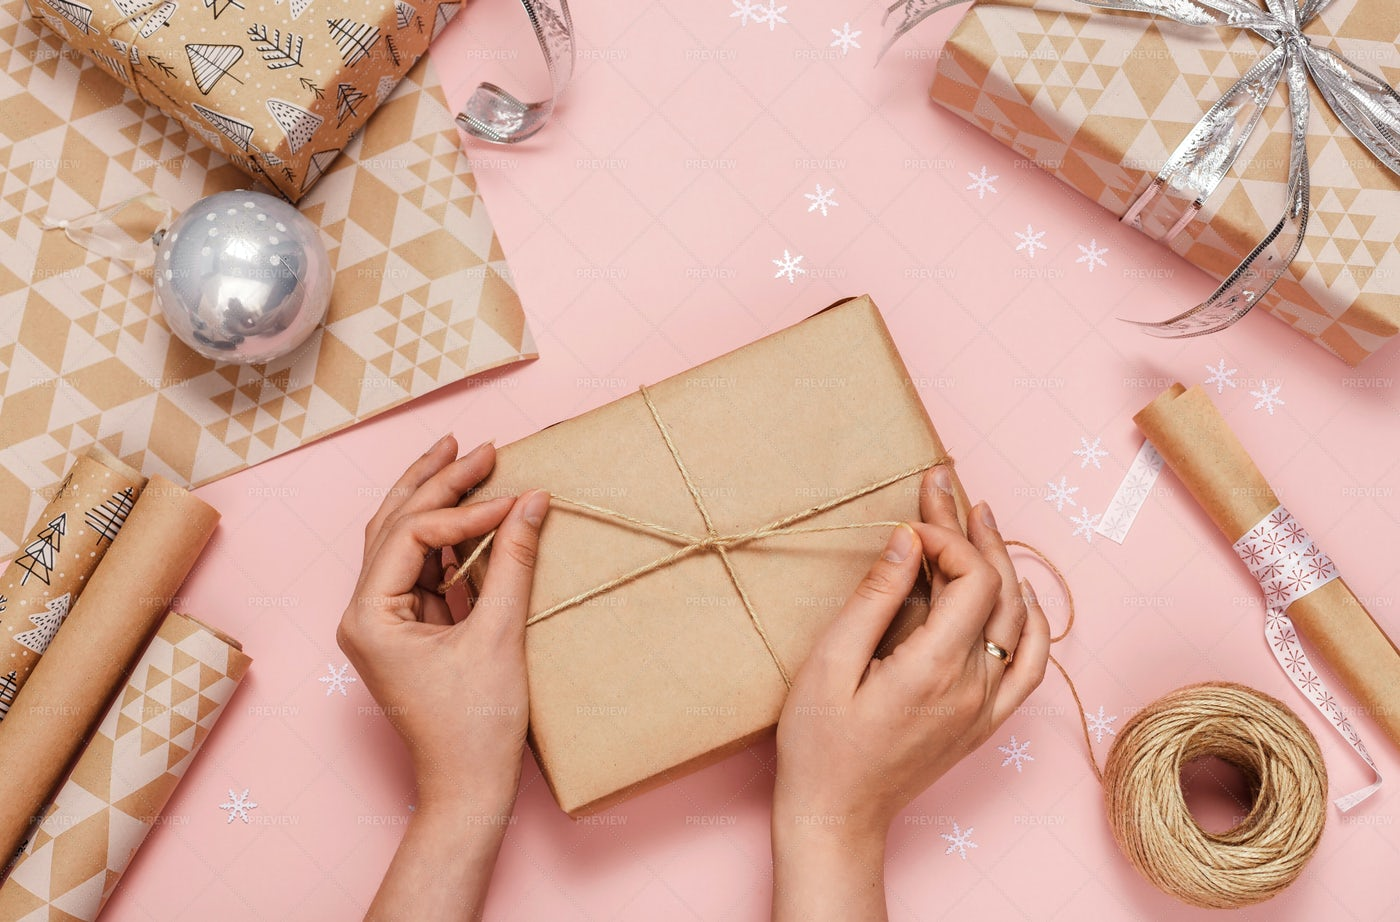 Hands Wrapping Gifts: Stock Photos